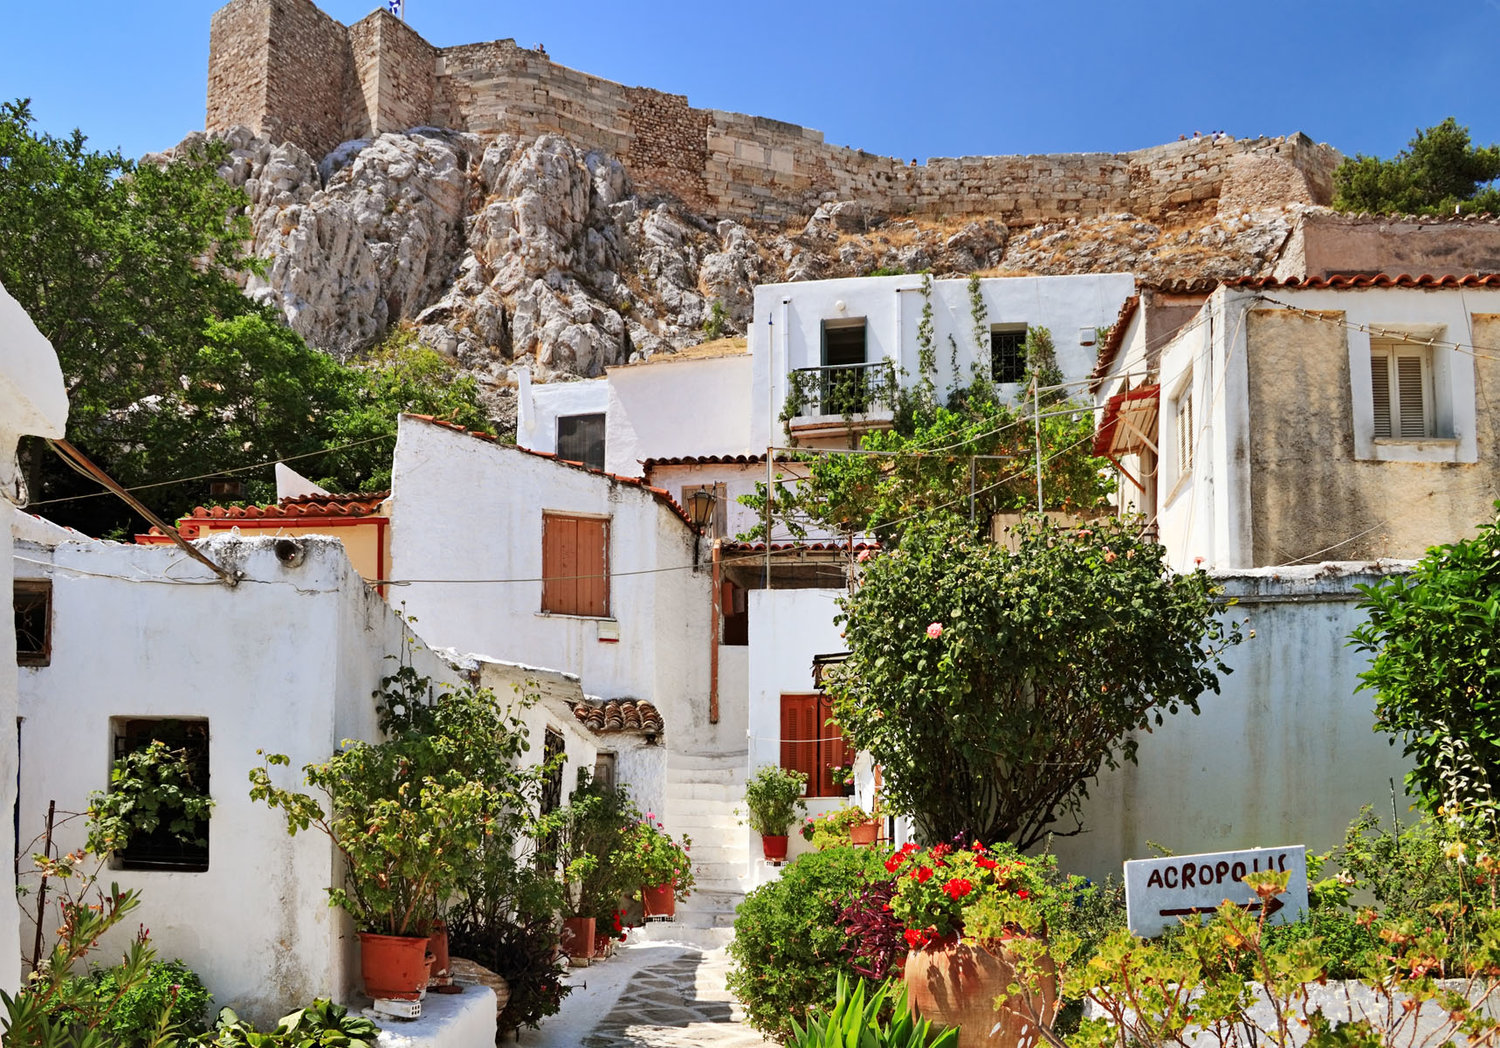 Anafiotika neighborhood under the Acropolis. Source:  DiscoverGreece